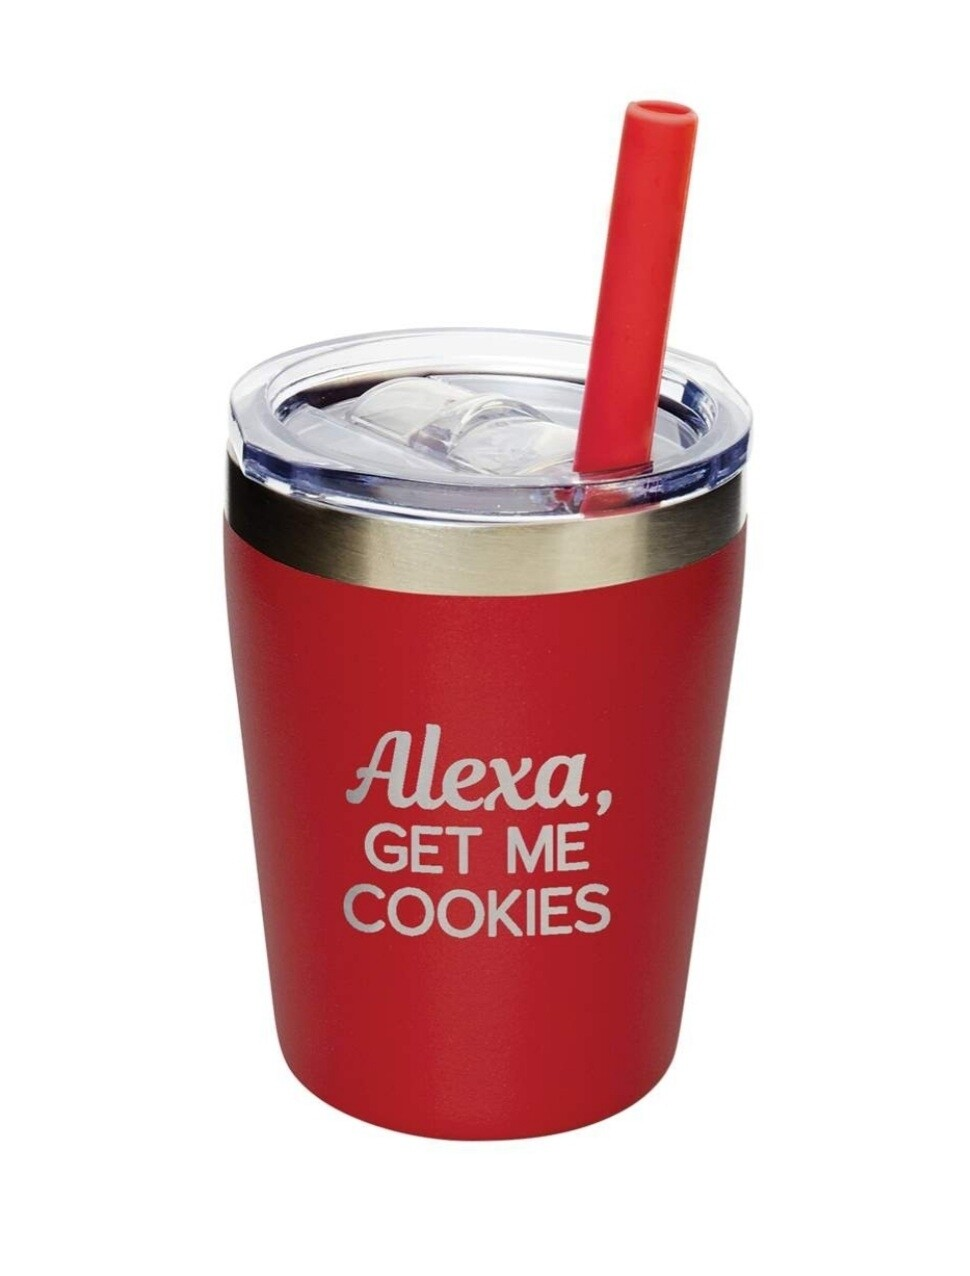 Carson 9oz Stainless Steel Children's Tumbler - Alexa, Get Me Cookies